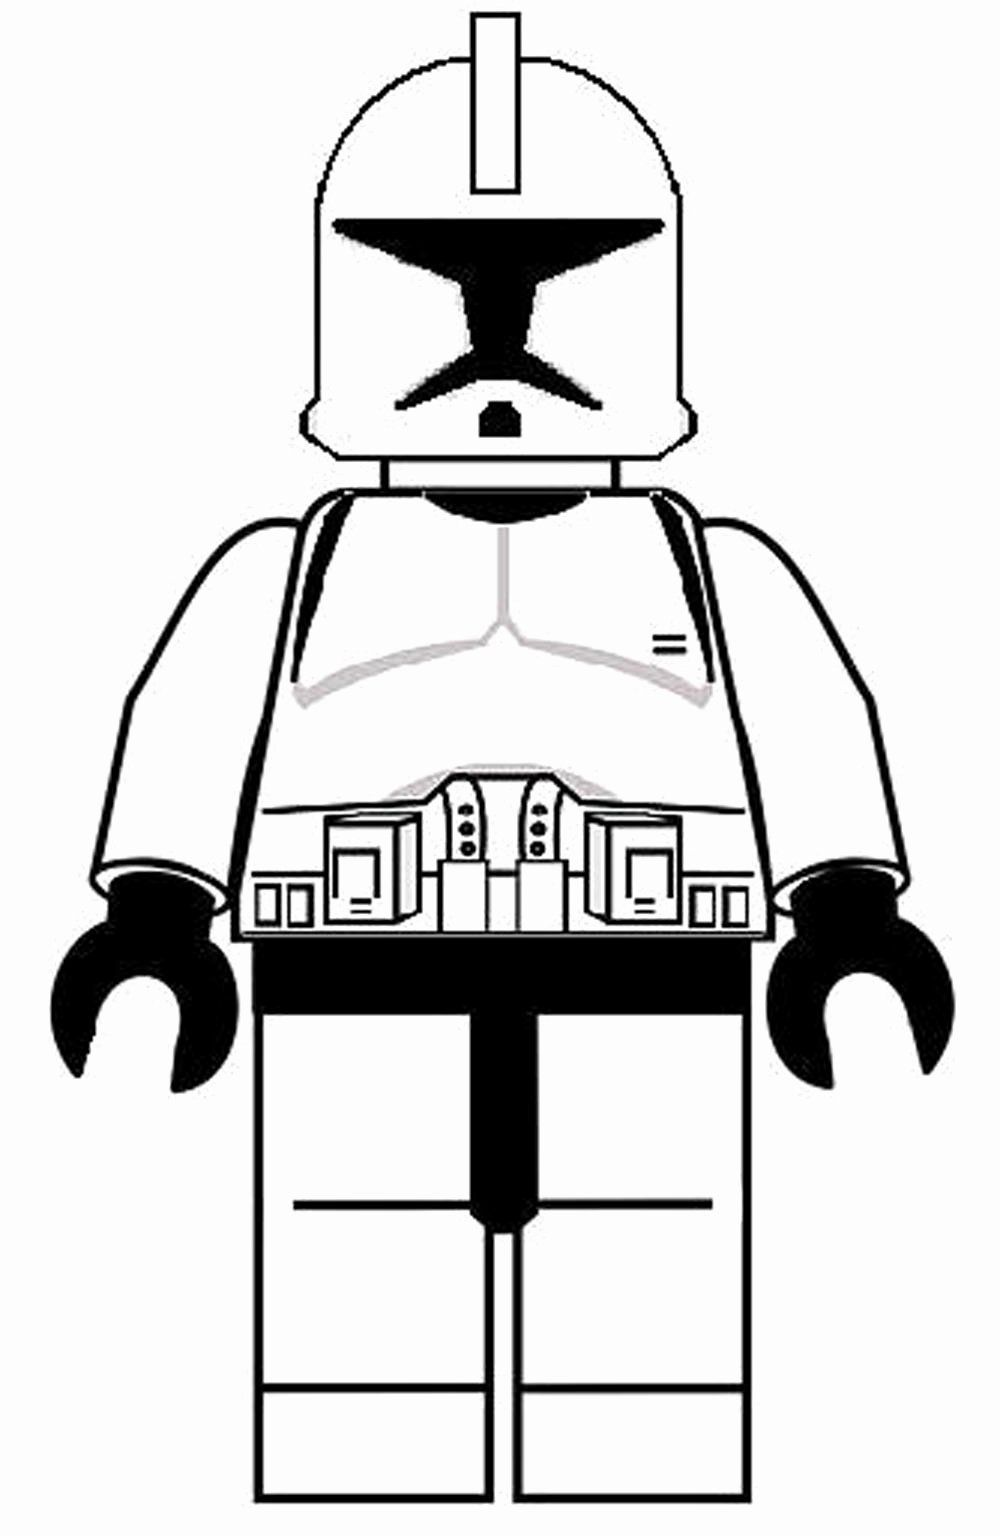 Lego Star Wars Coloring Page Unique Lego Star Wars Coloring Page Bestofcoloring Lego Coloring Pages Lego Coloring Lego Coloring Sheet